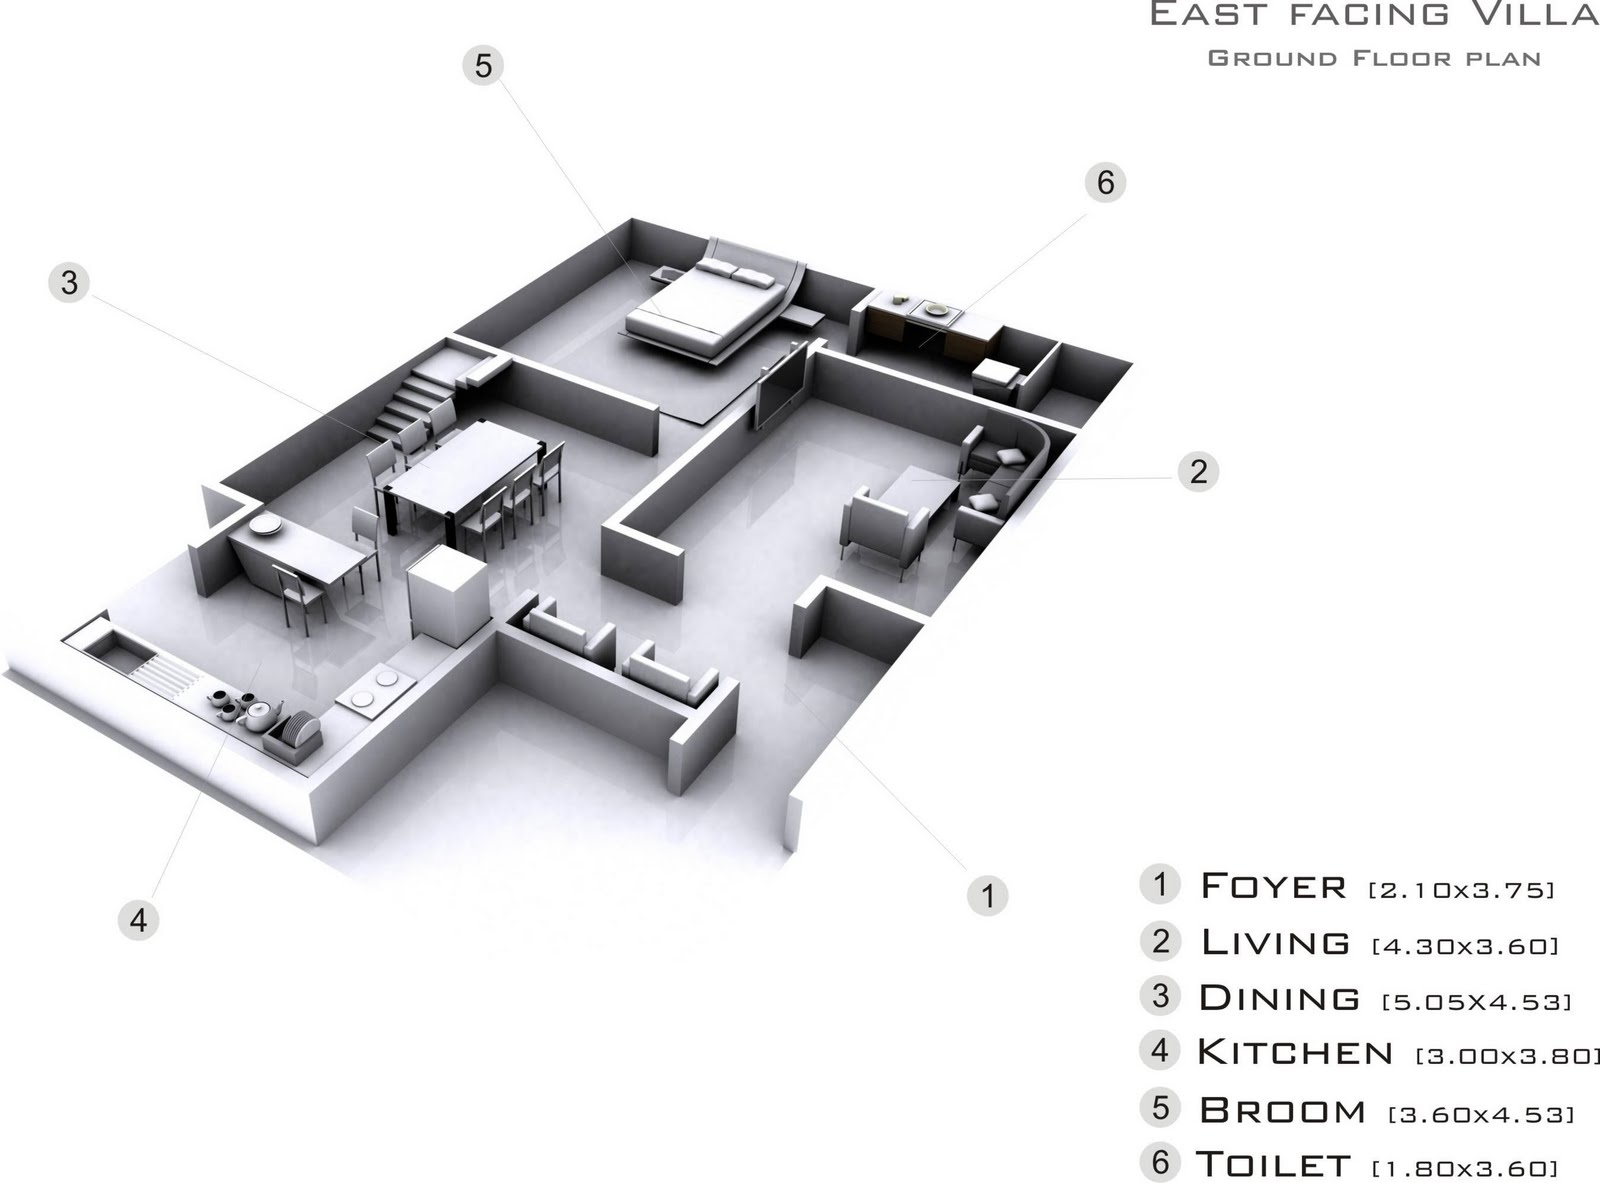 3D Floor Plan, 3D Floor Plan creation, 3D Floor Plan Image, 3D